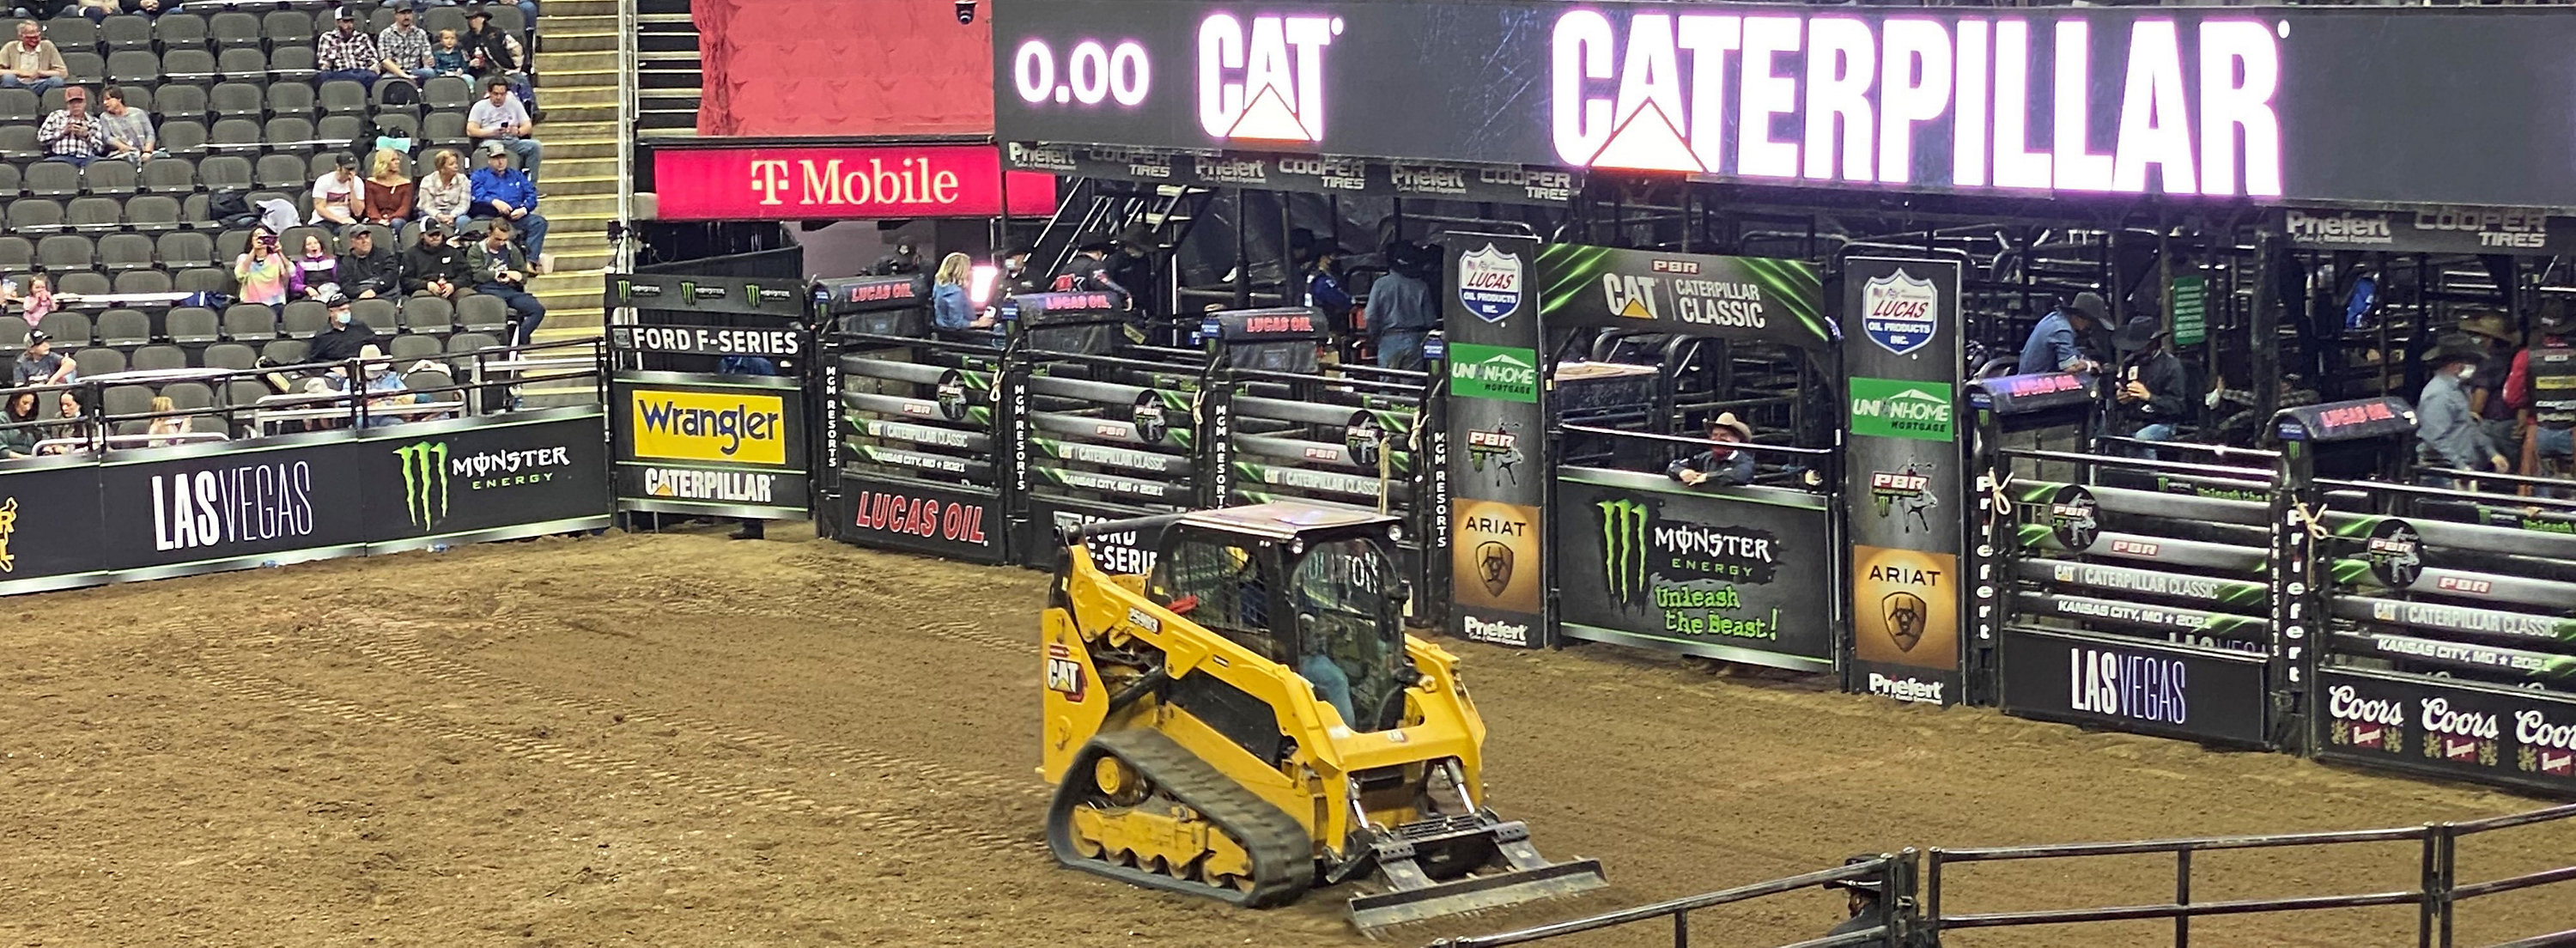 Exclusive Cat® benefits for PBR attendance